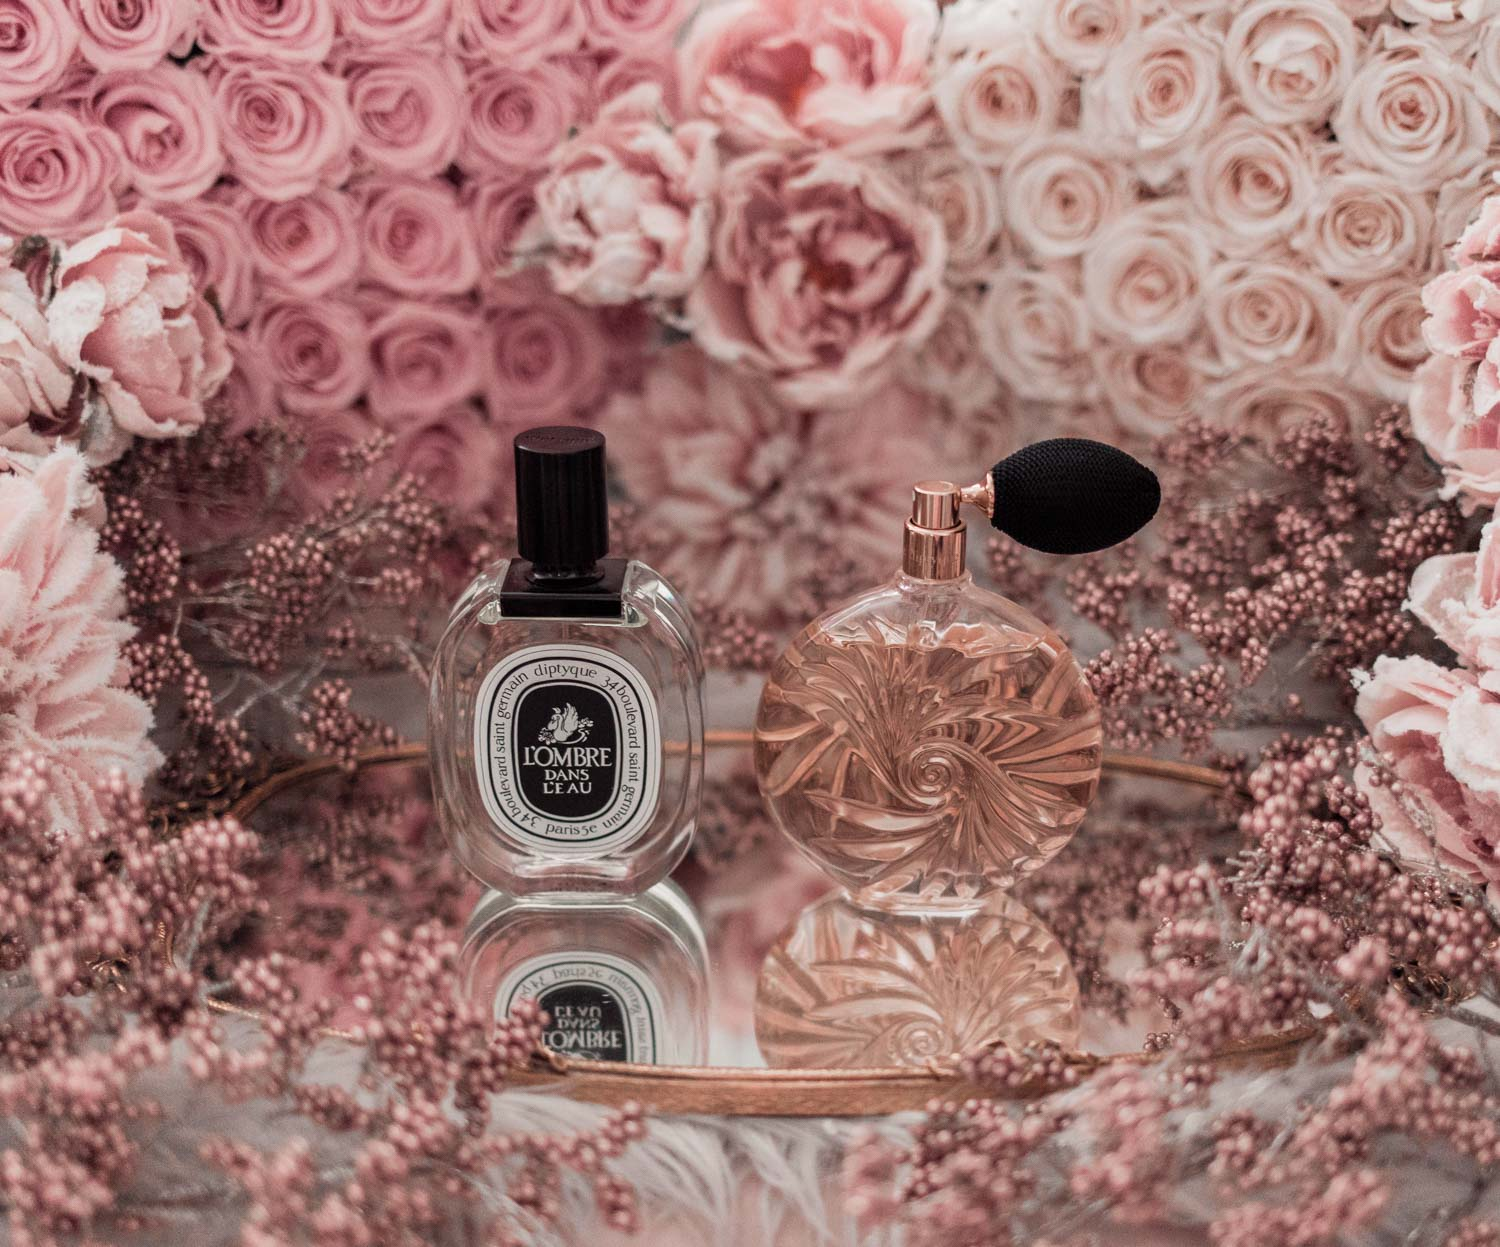 Feminine fashion blogger Elizabeth Hugen of Lizzie in Lace shares the best feminine perfumes and her girly fragrance collection including Diptique L'ombre dans l'eau and essences insensees